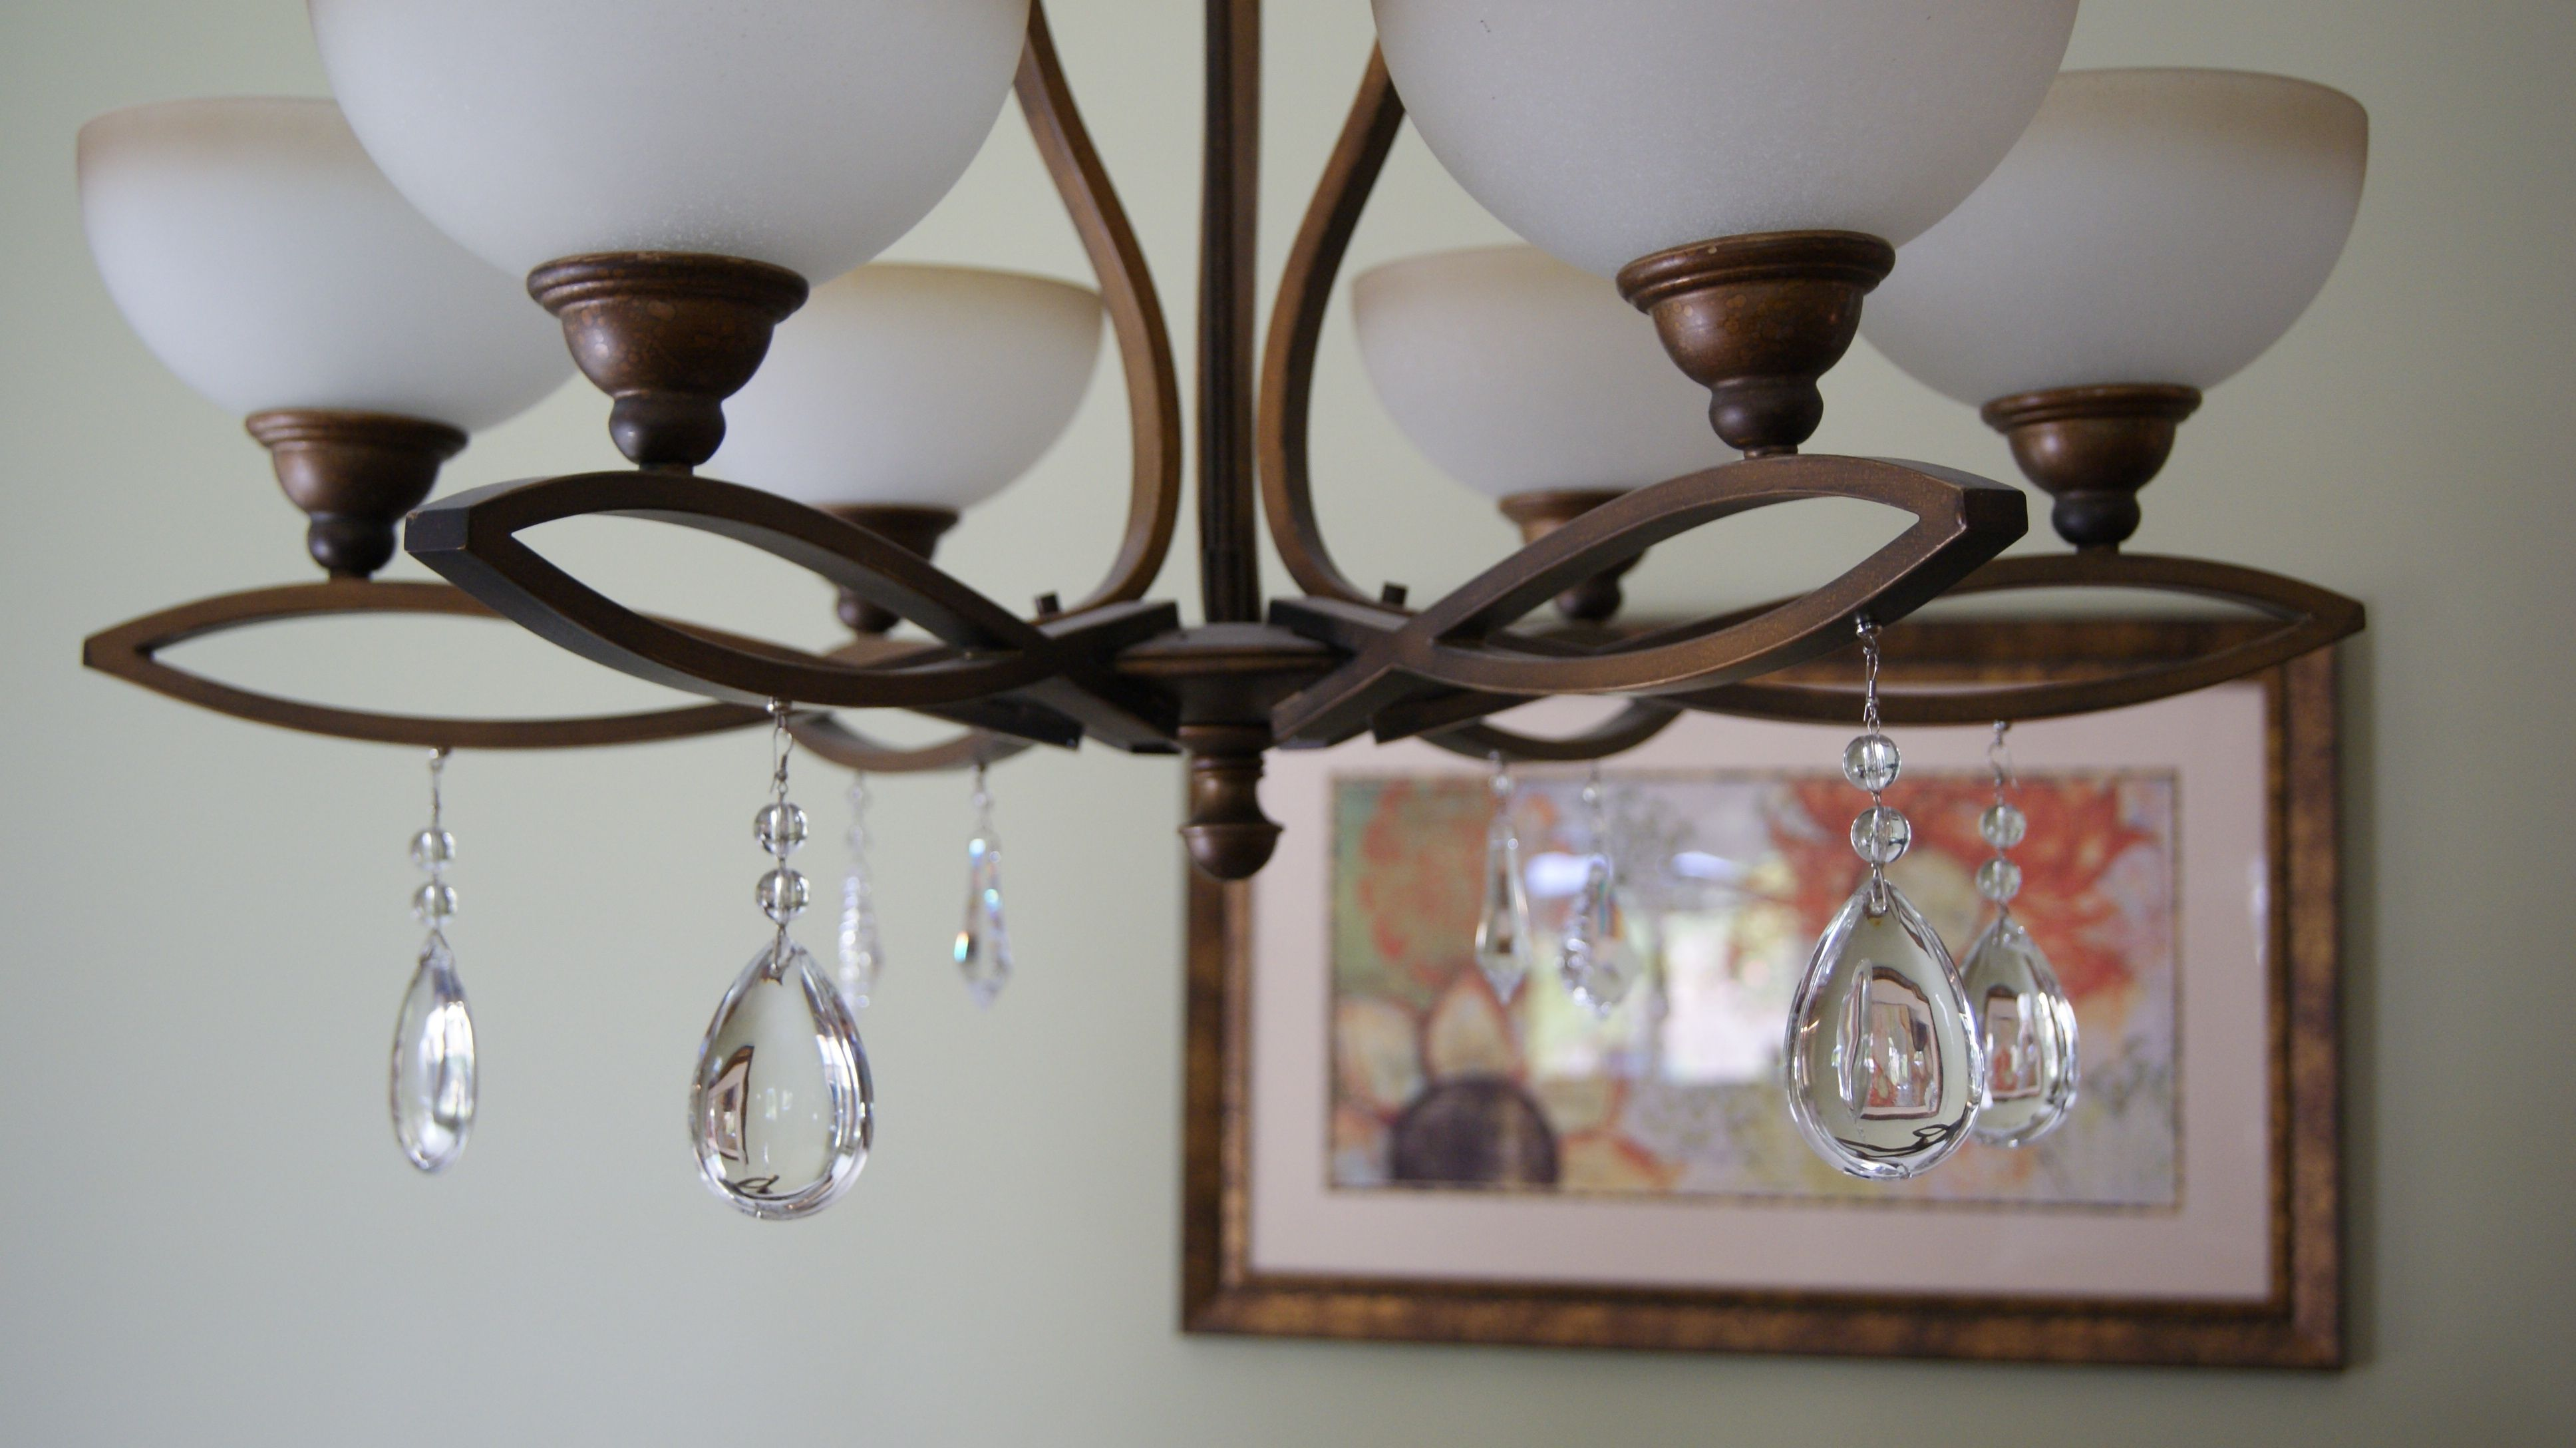 Chandelier with magnetic crystal light charms chandeliers chandelier with magnetic crystal light charms aloadofball Choice Image